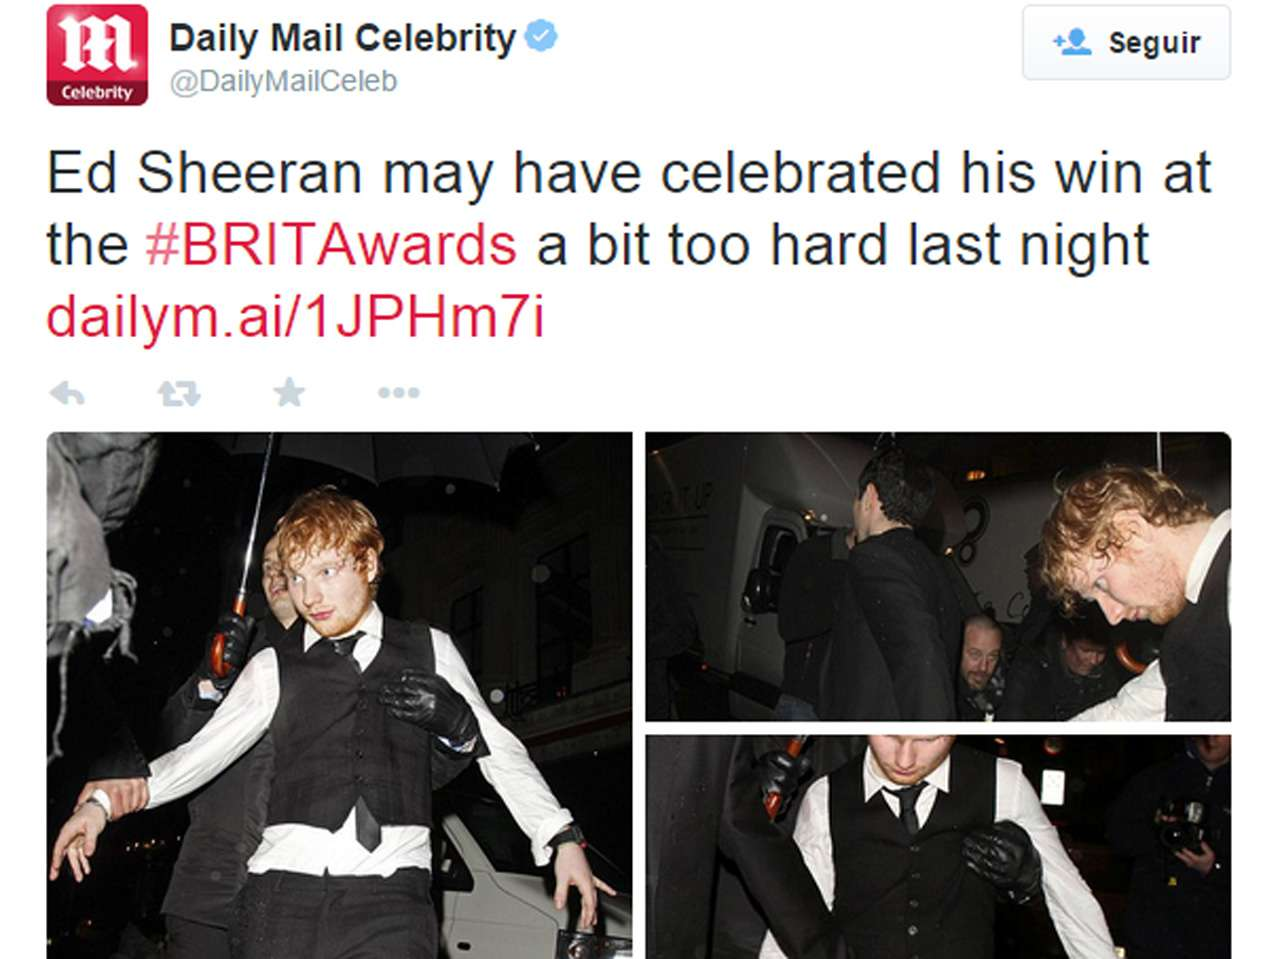 Ed Sheeran Foto: Twitter / Daily Mail Celebrity